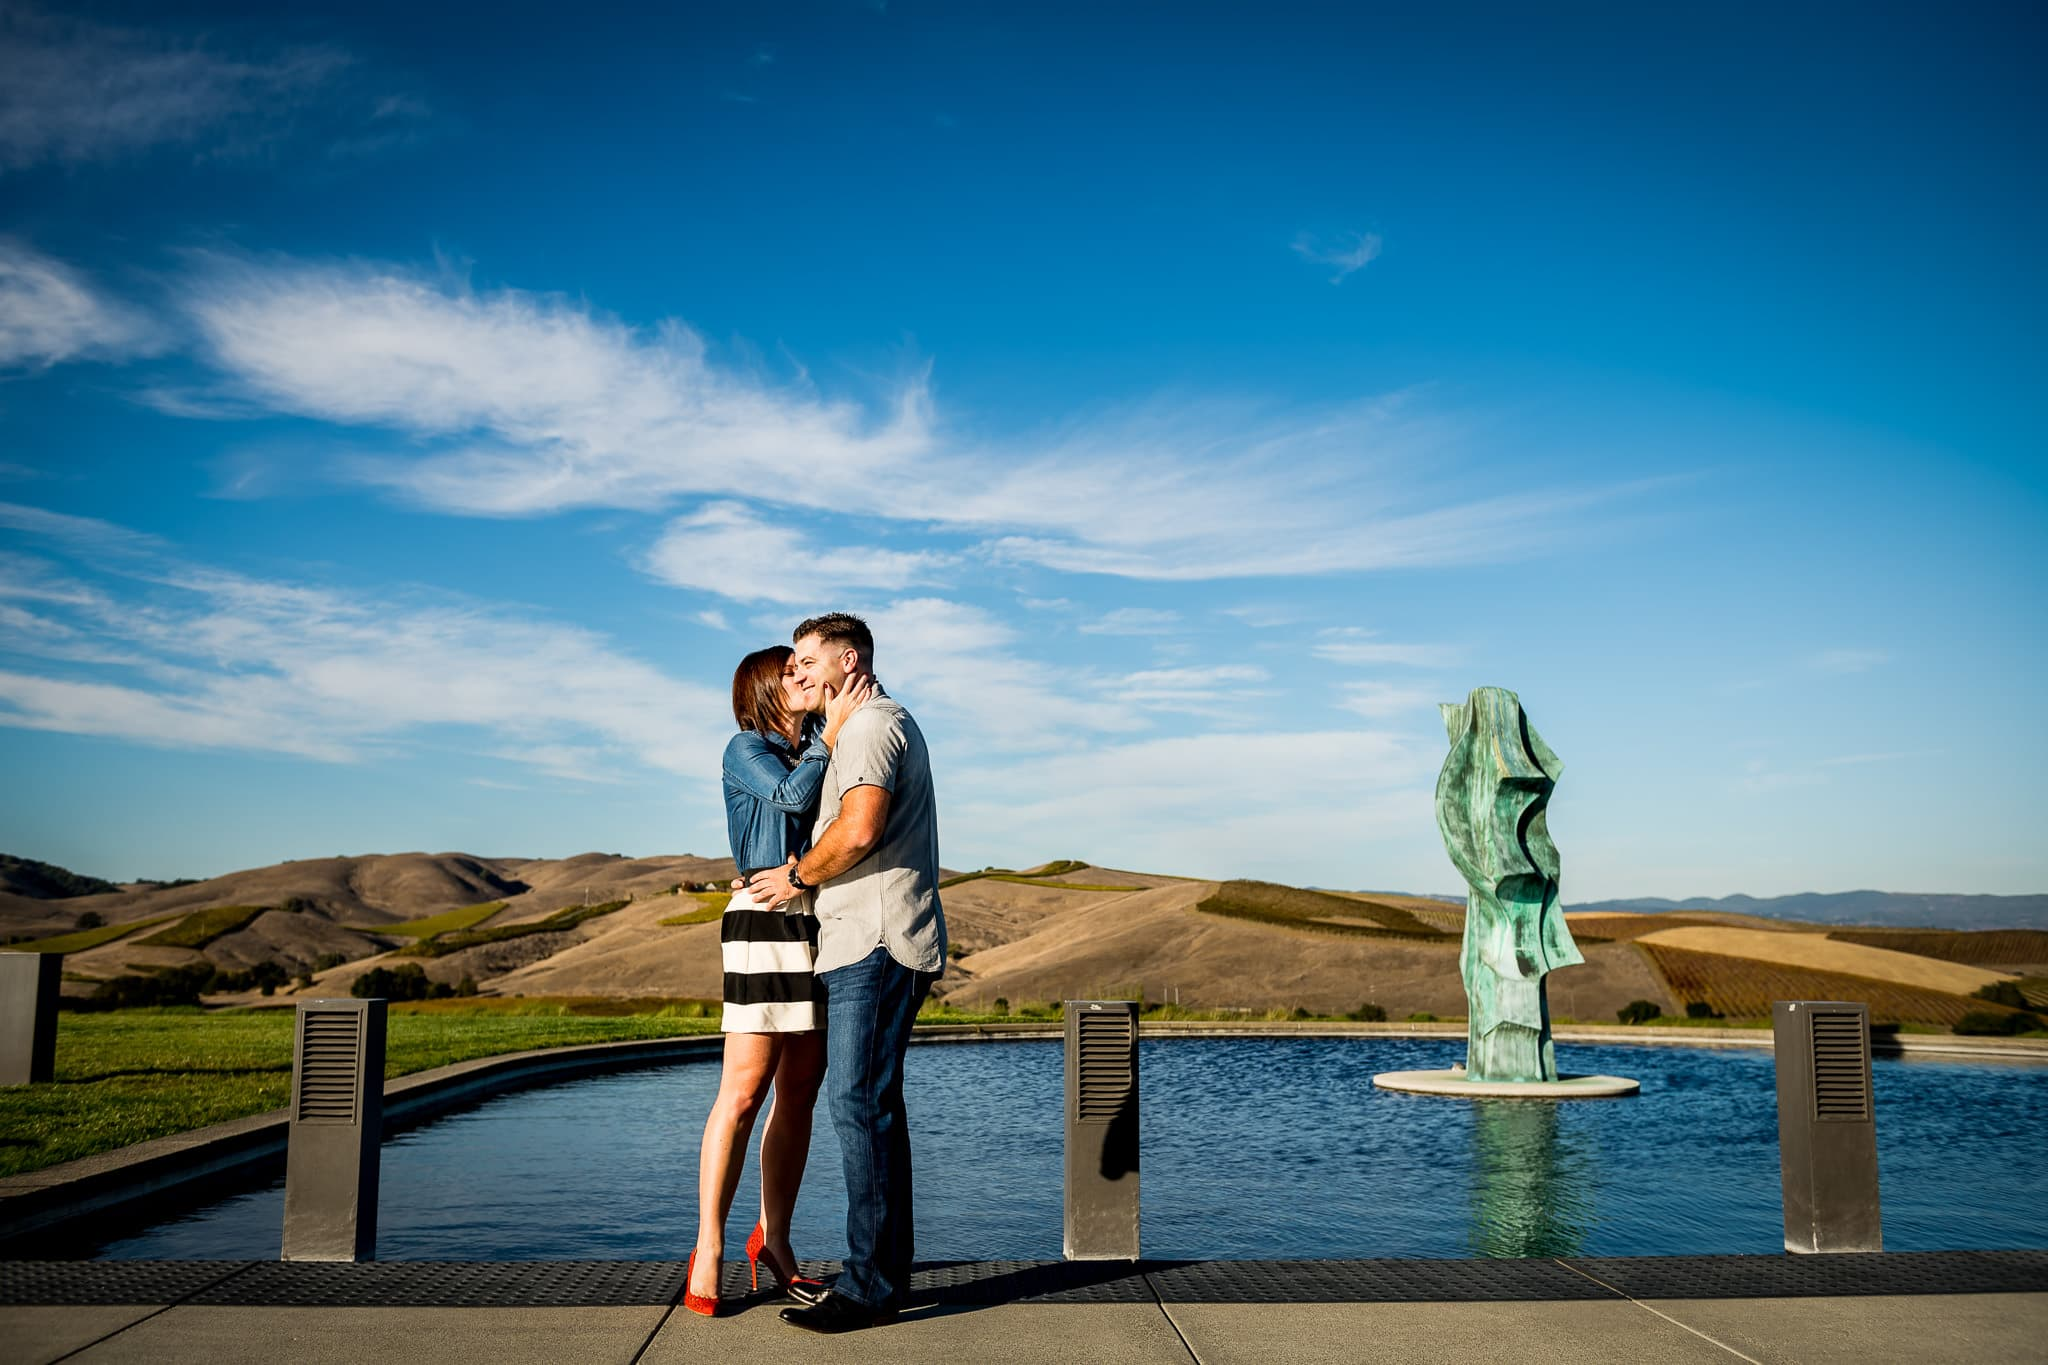 Engaged woman kisses her fiancé on the cheek at Artesa Winery in Napa Valley